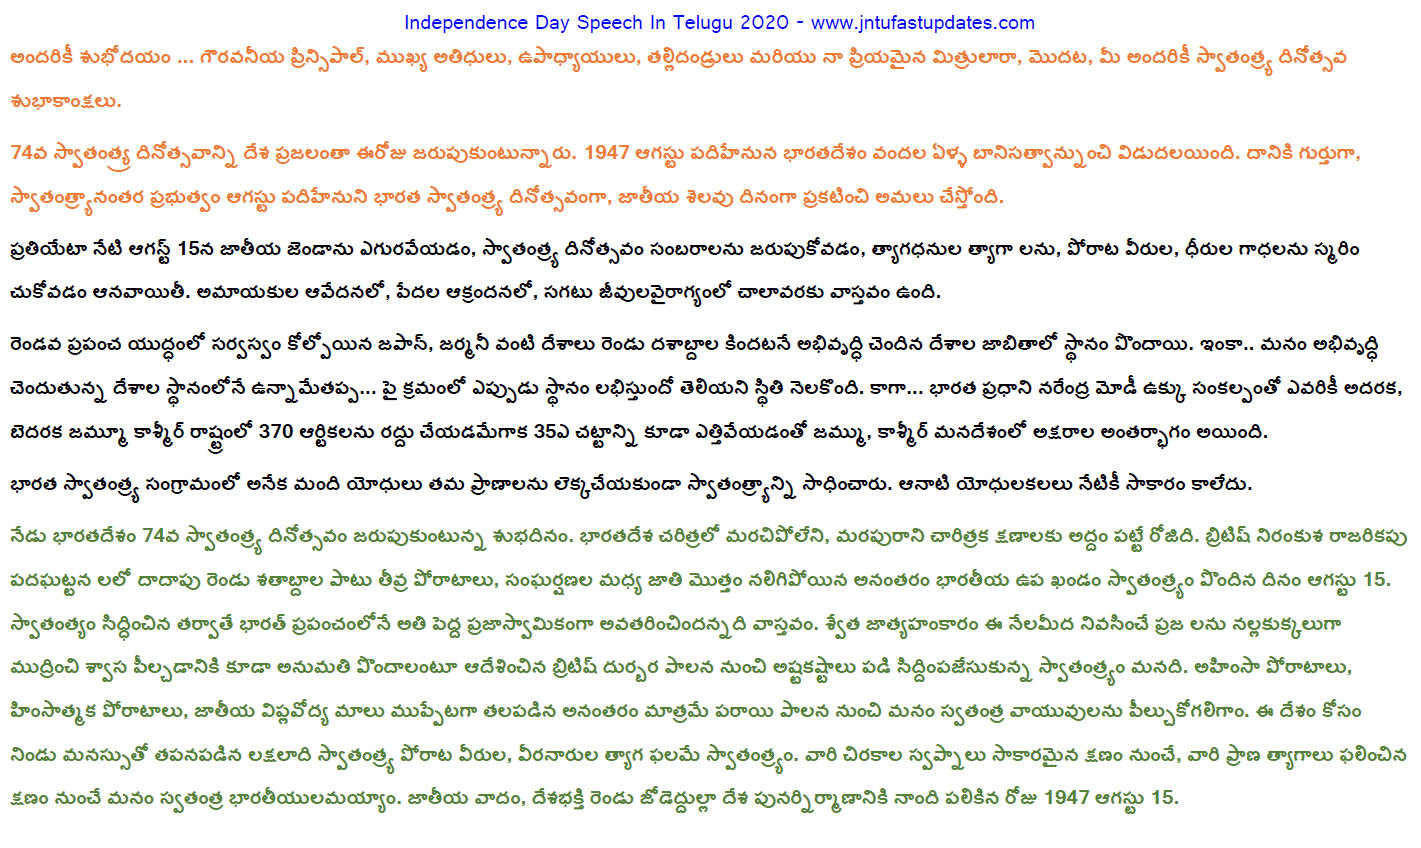 Independence Day Speech In Telugu 2019 For Students, Teachers